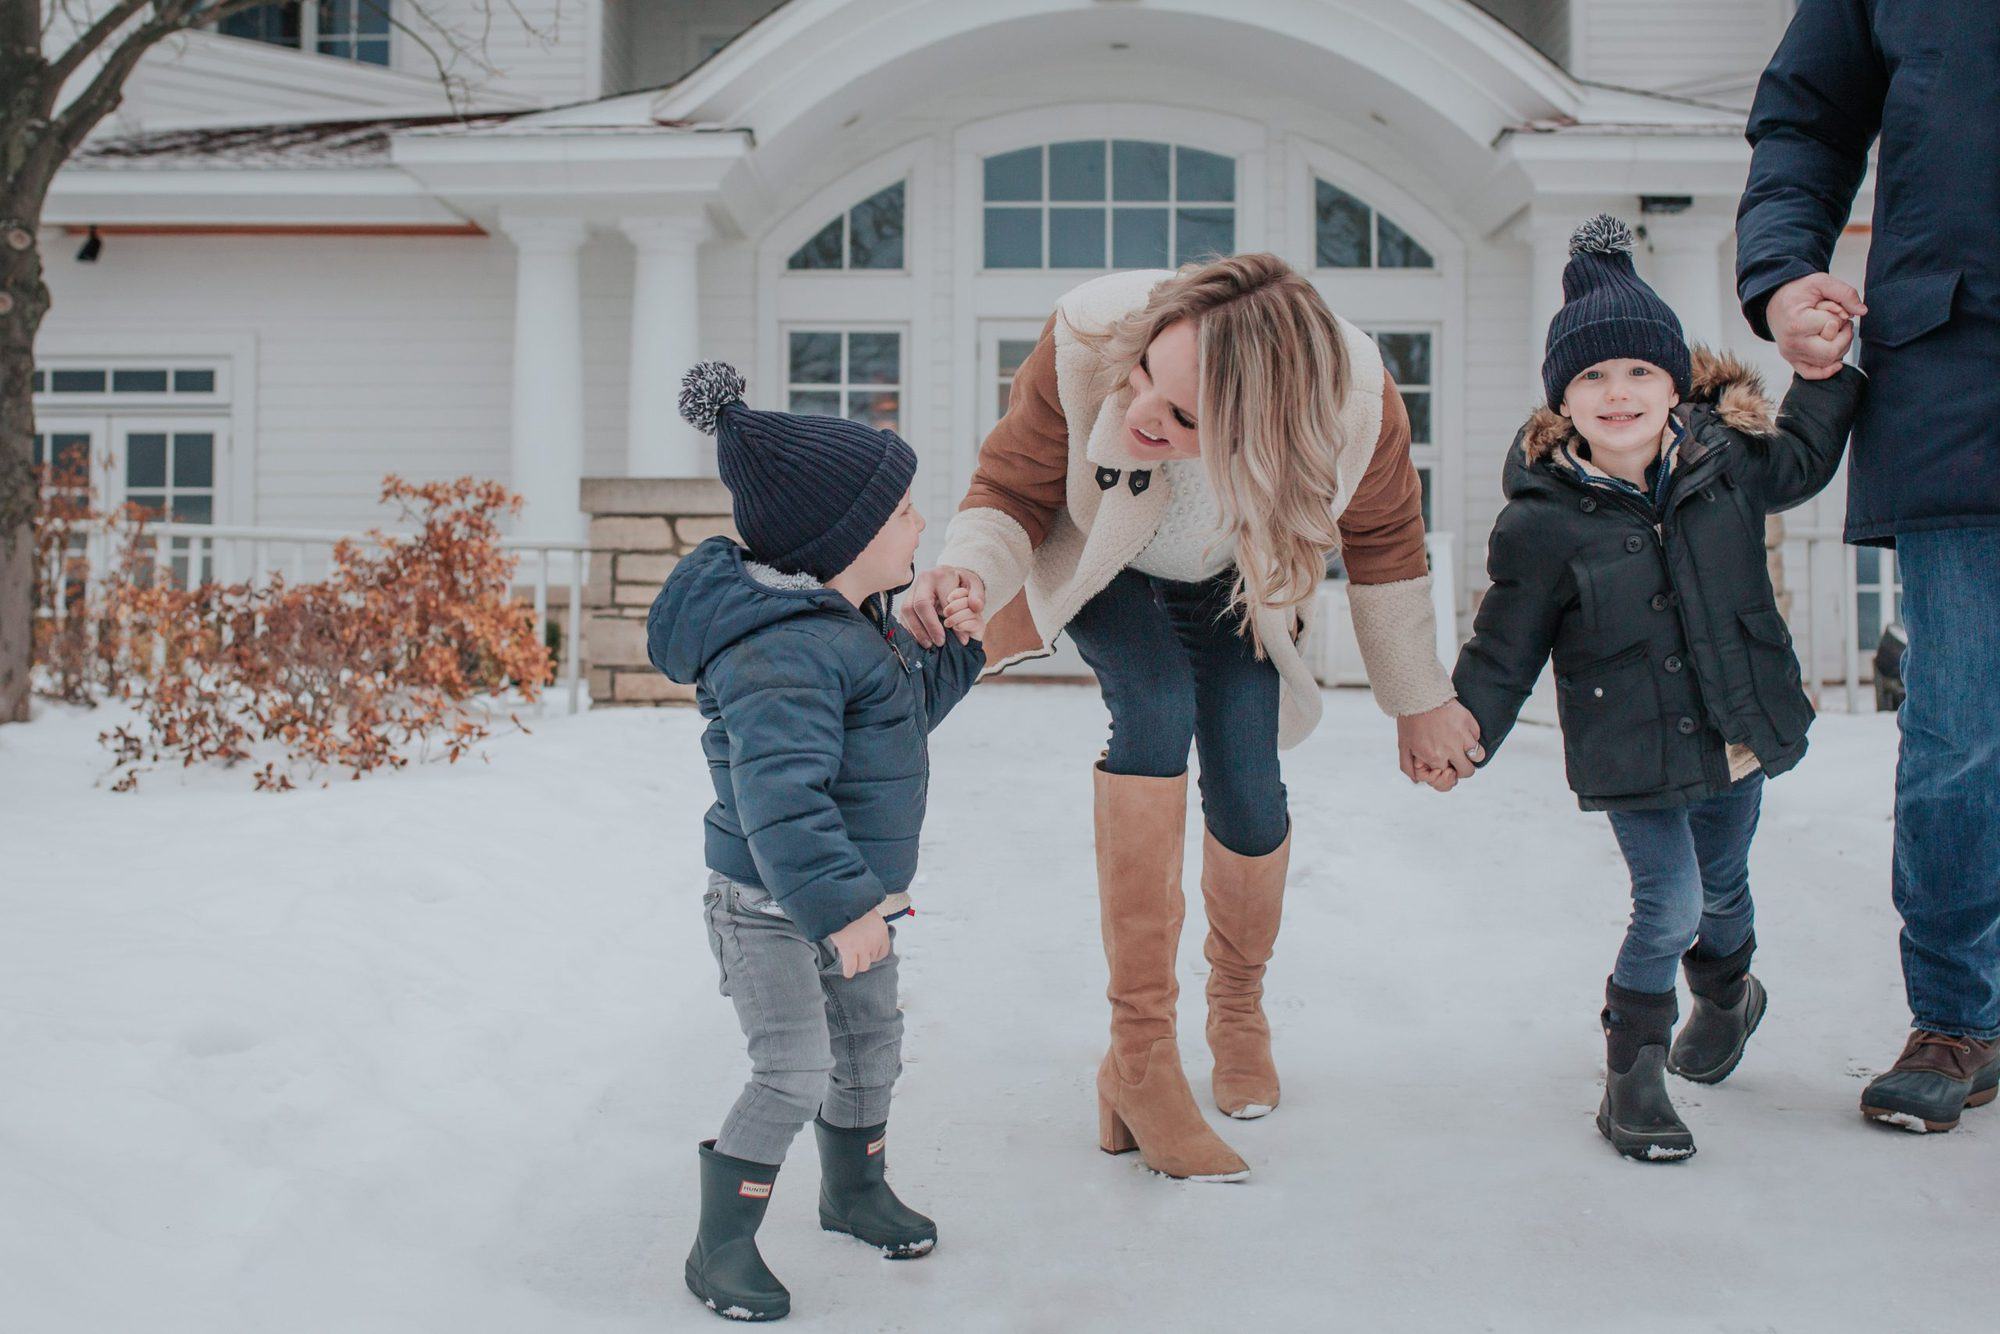 mother and sons walking outside in winter |Inn at Bay Harbor by popular Michigan travel blog, The House of Navy: image of a family standing outside at the Inn at Bay Harbor.